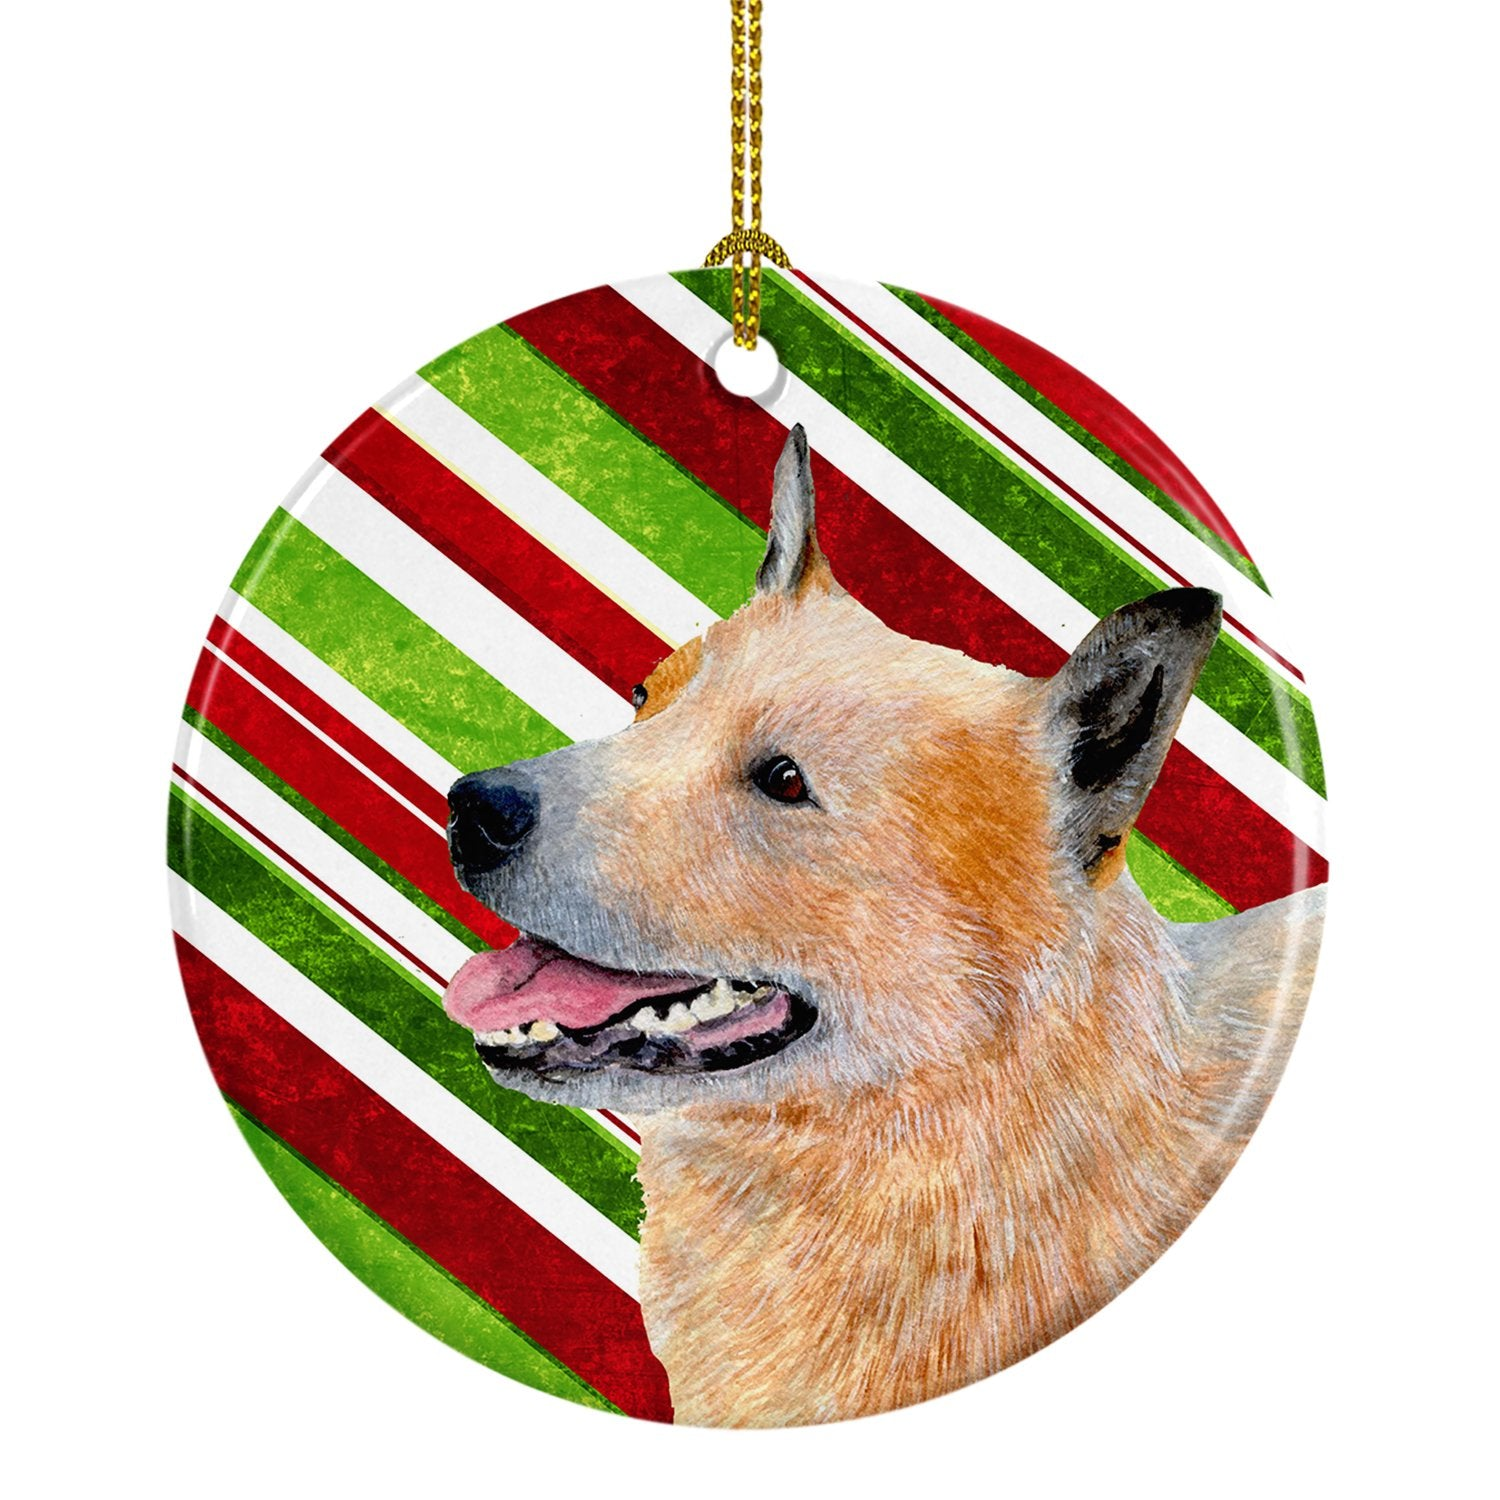 Australian Cattle Dog Candy Cane Holiday Christmas Ceramic Ornament LH9227 by Caroline's Treasures